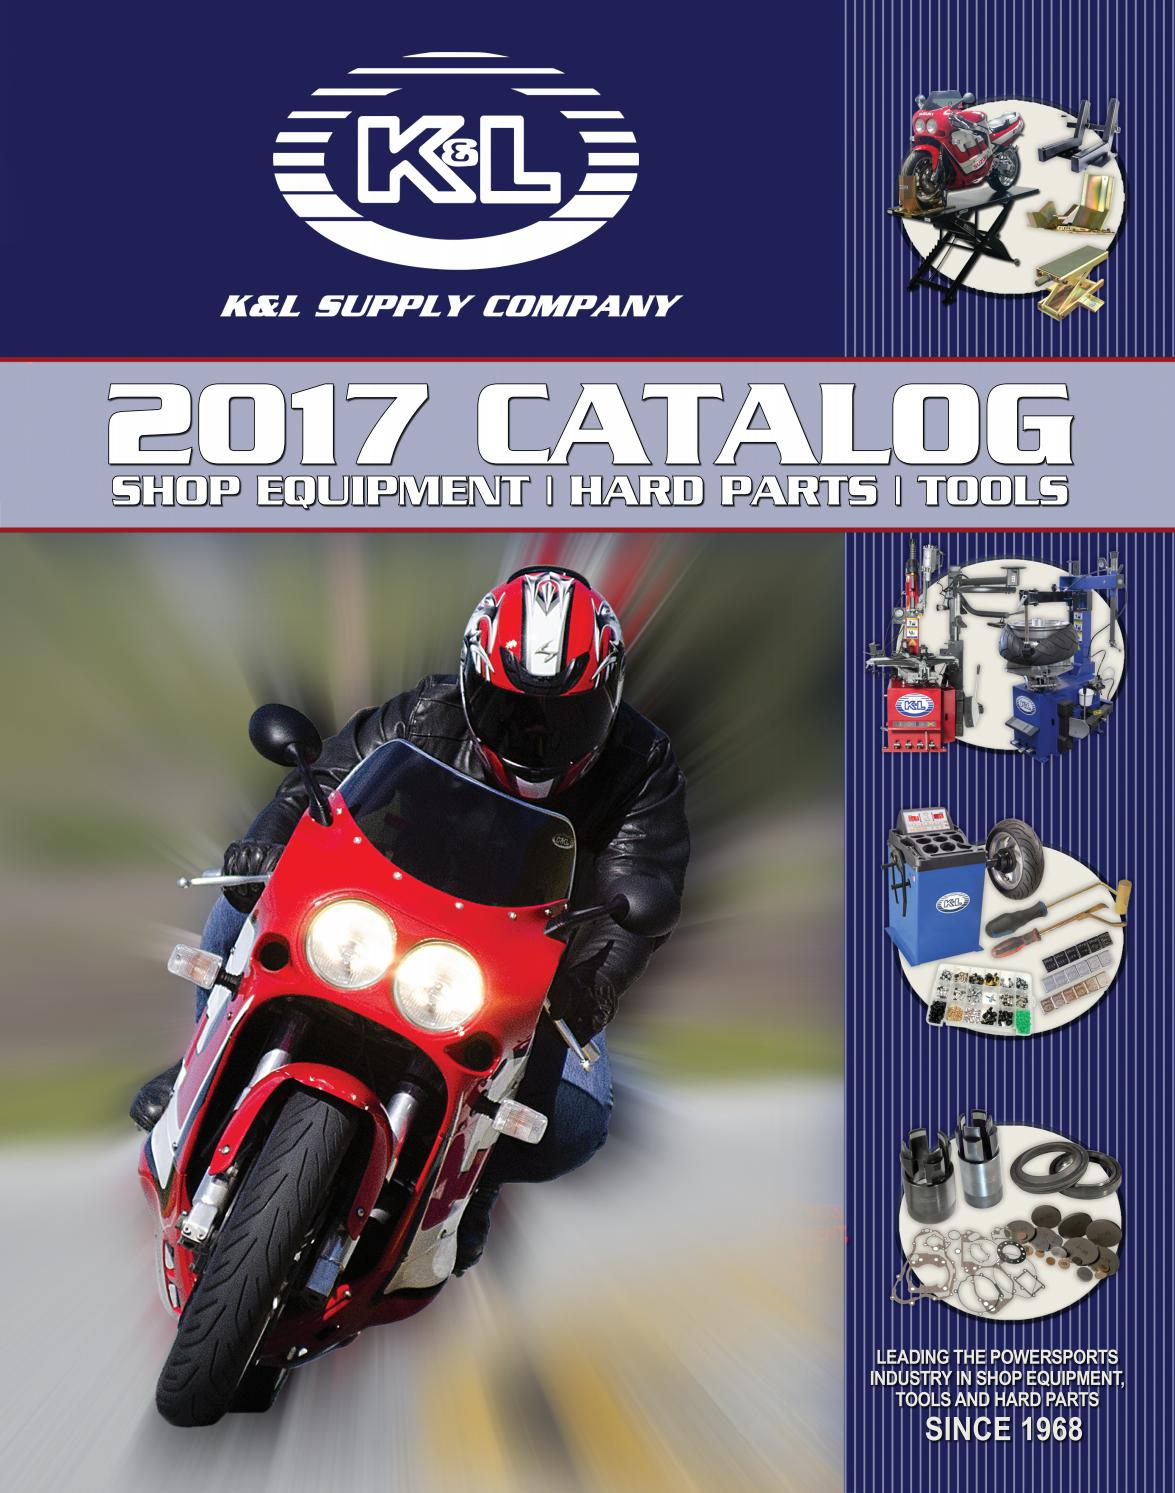 2017 Kl Supply Product Catalog By Company Issuu Karet Swing Arm Rx King Bulet Spesial K Original Yamaha Japan Nzl Part 135cc